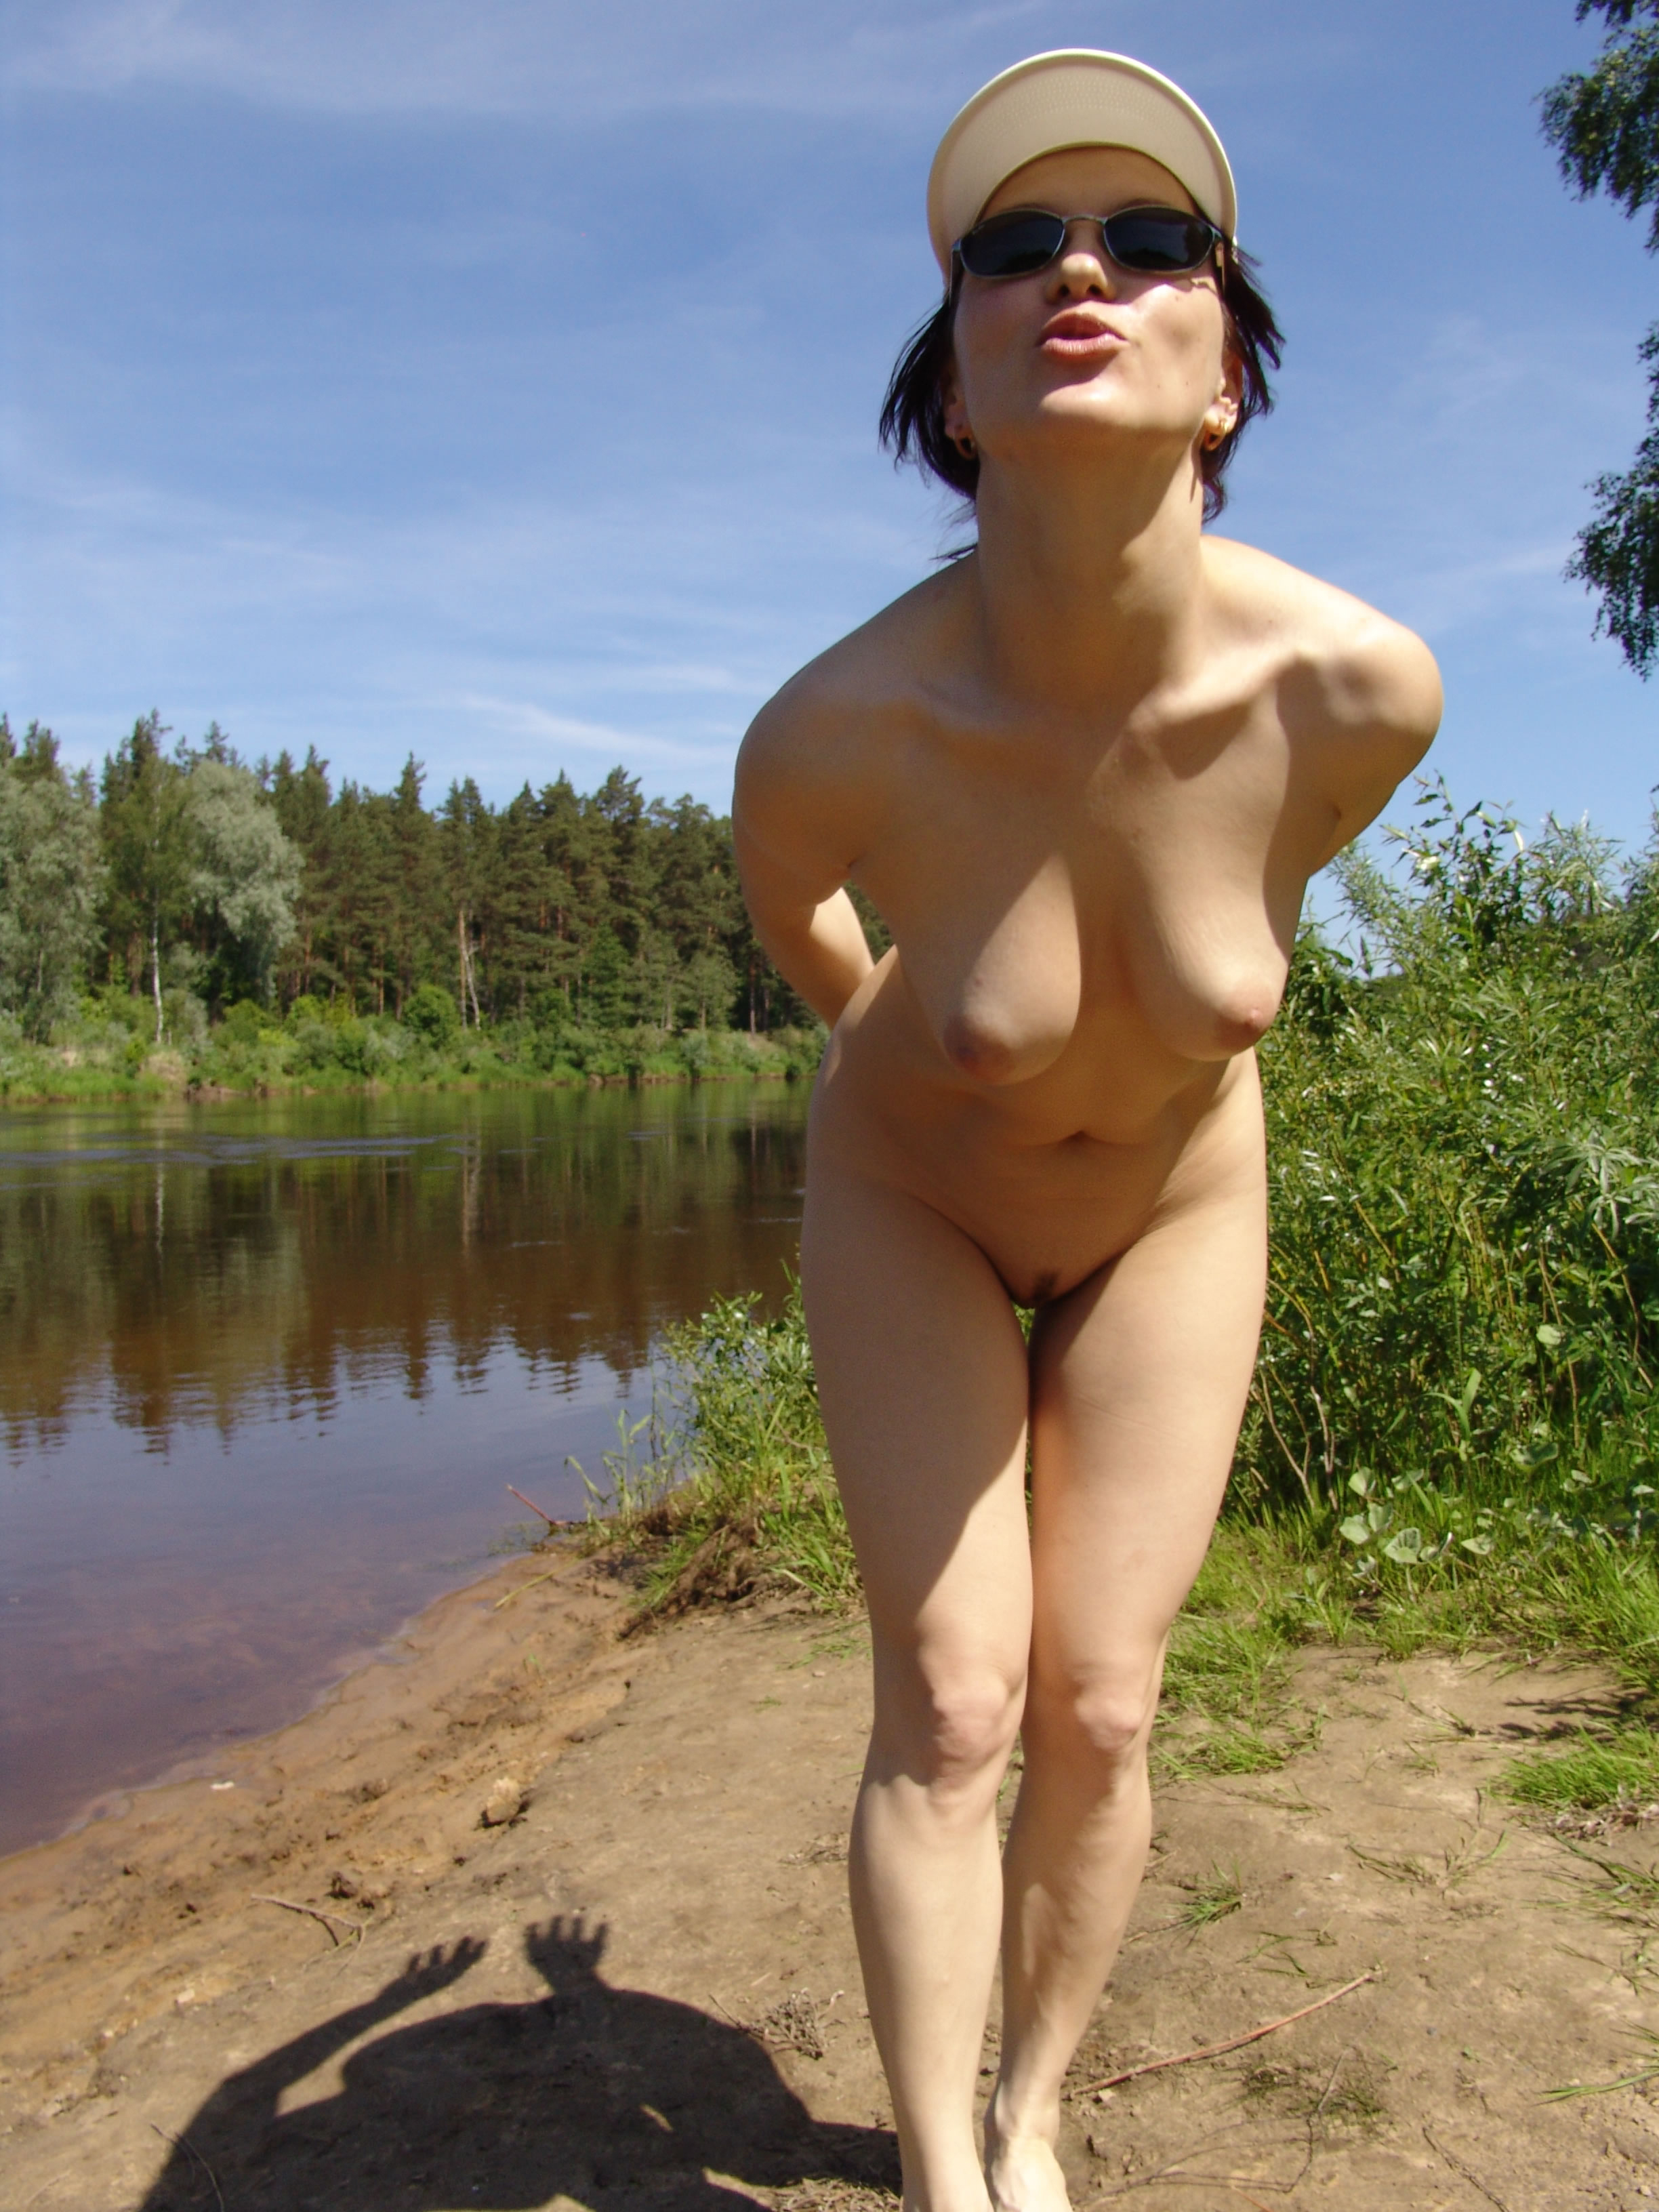 Congratulate, this mature wife nude outdoors will